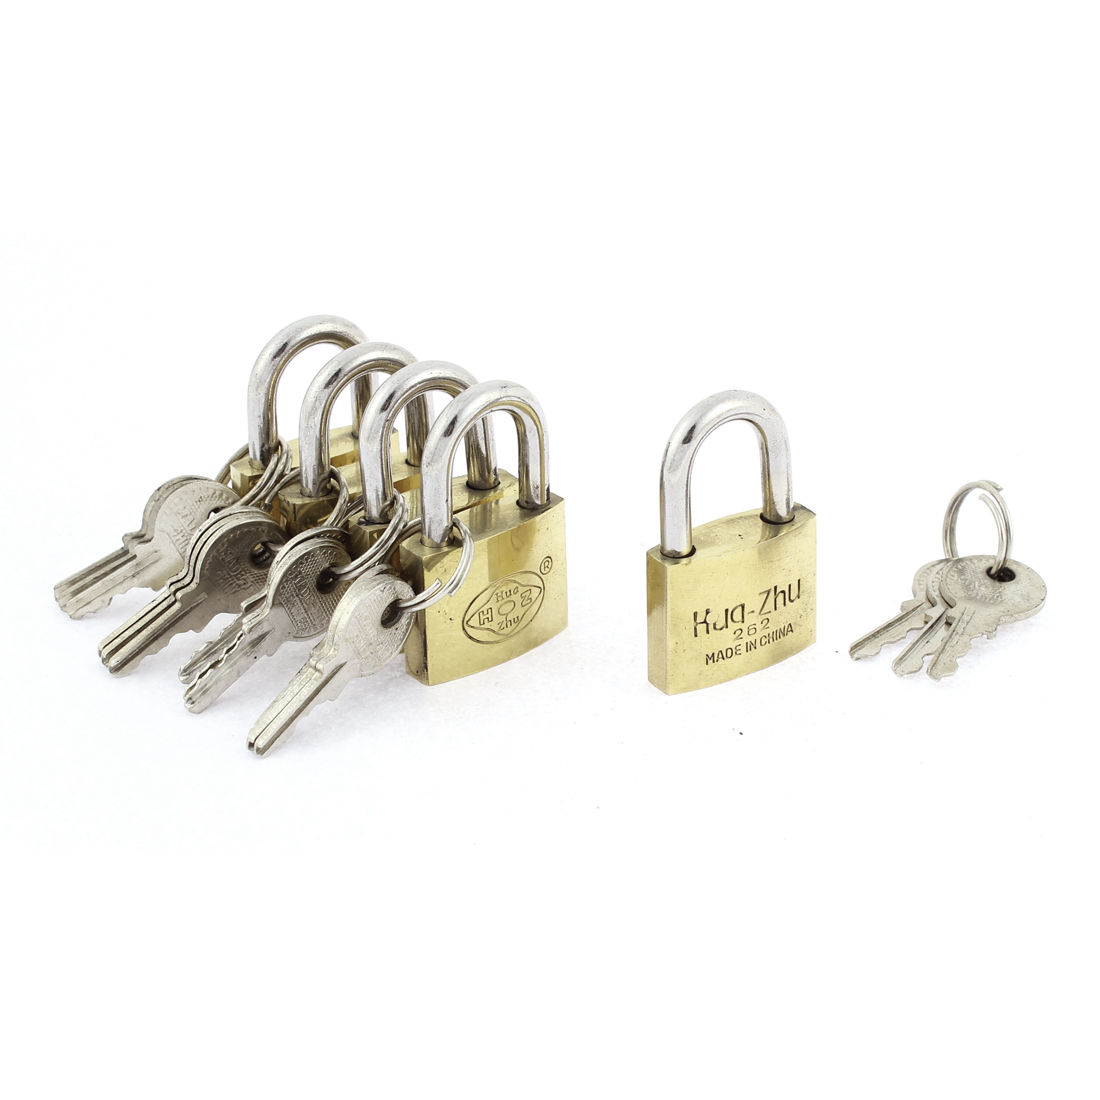 Cabinet Cupboard Desk Box Safety Padlock Locks 5pcs w Keys